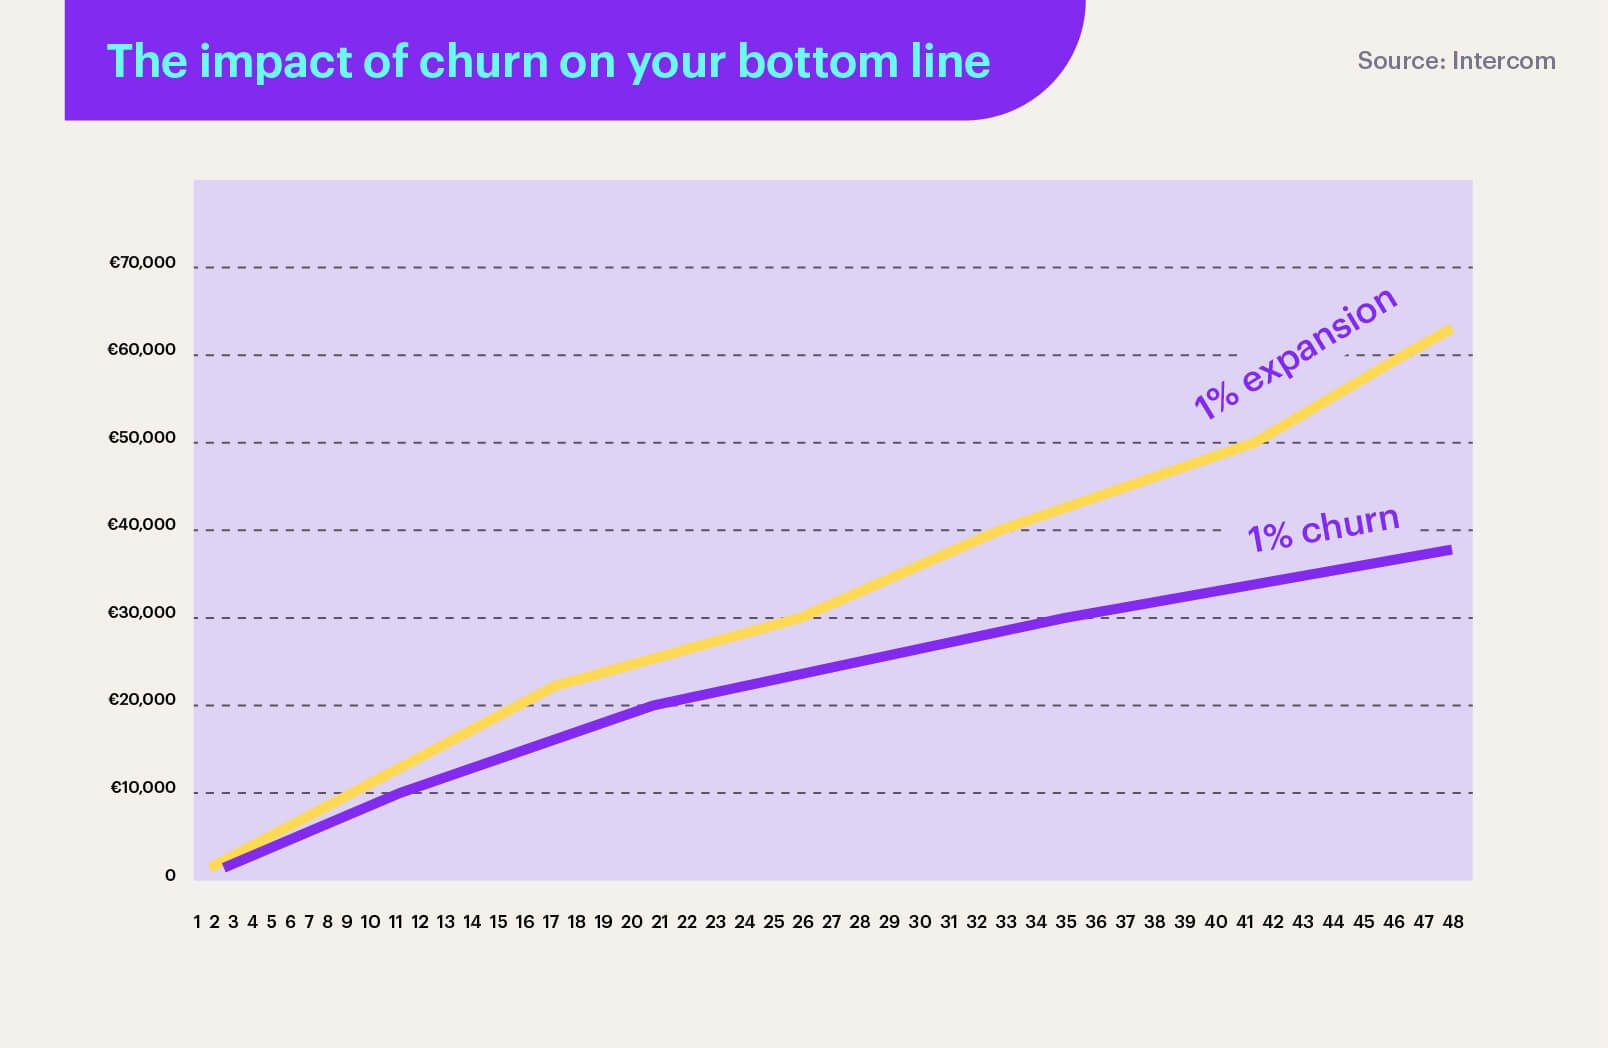 The impact of churn on your bottom line